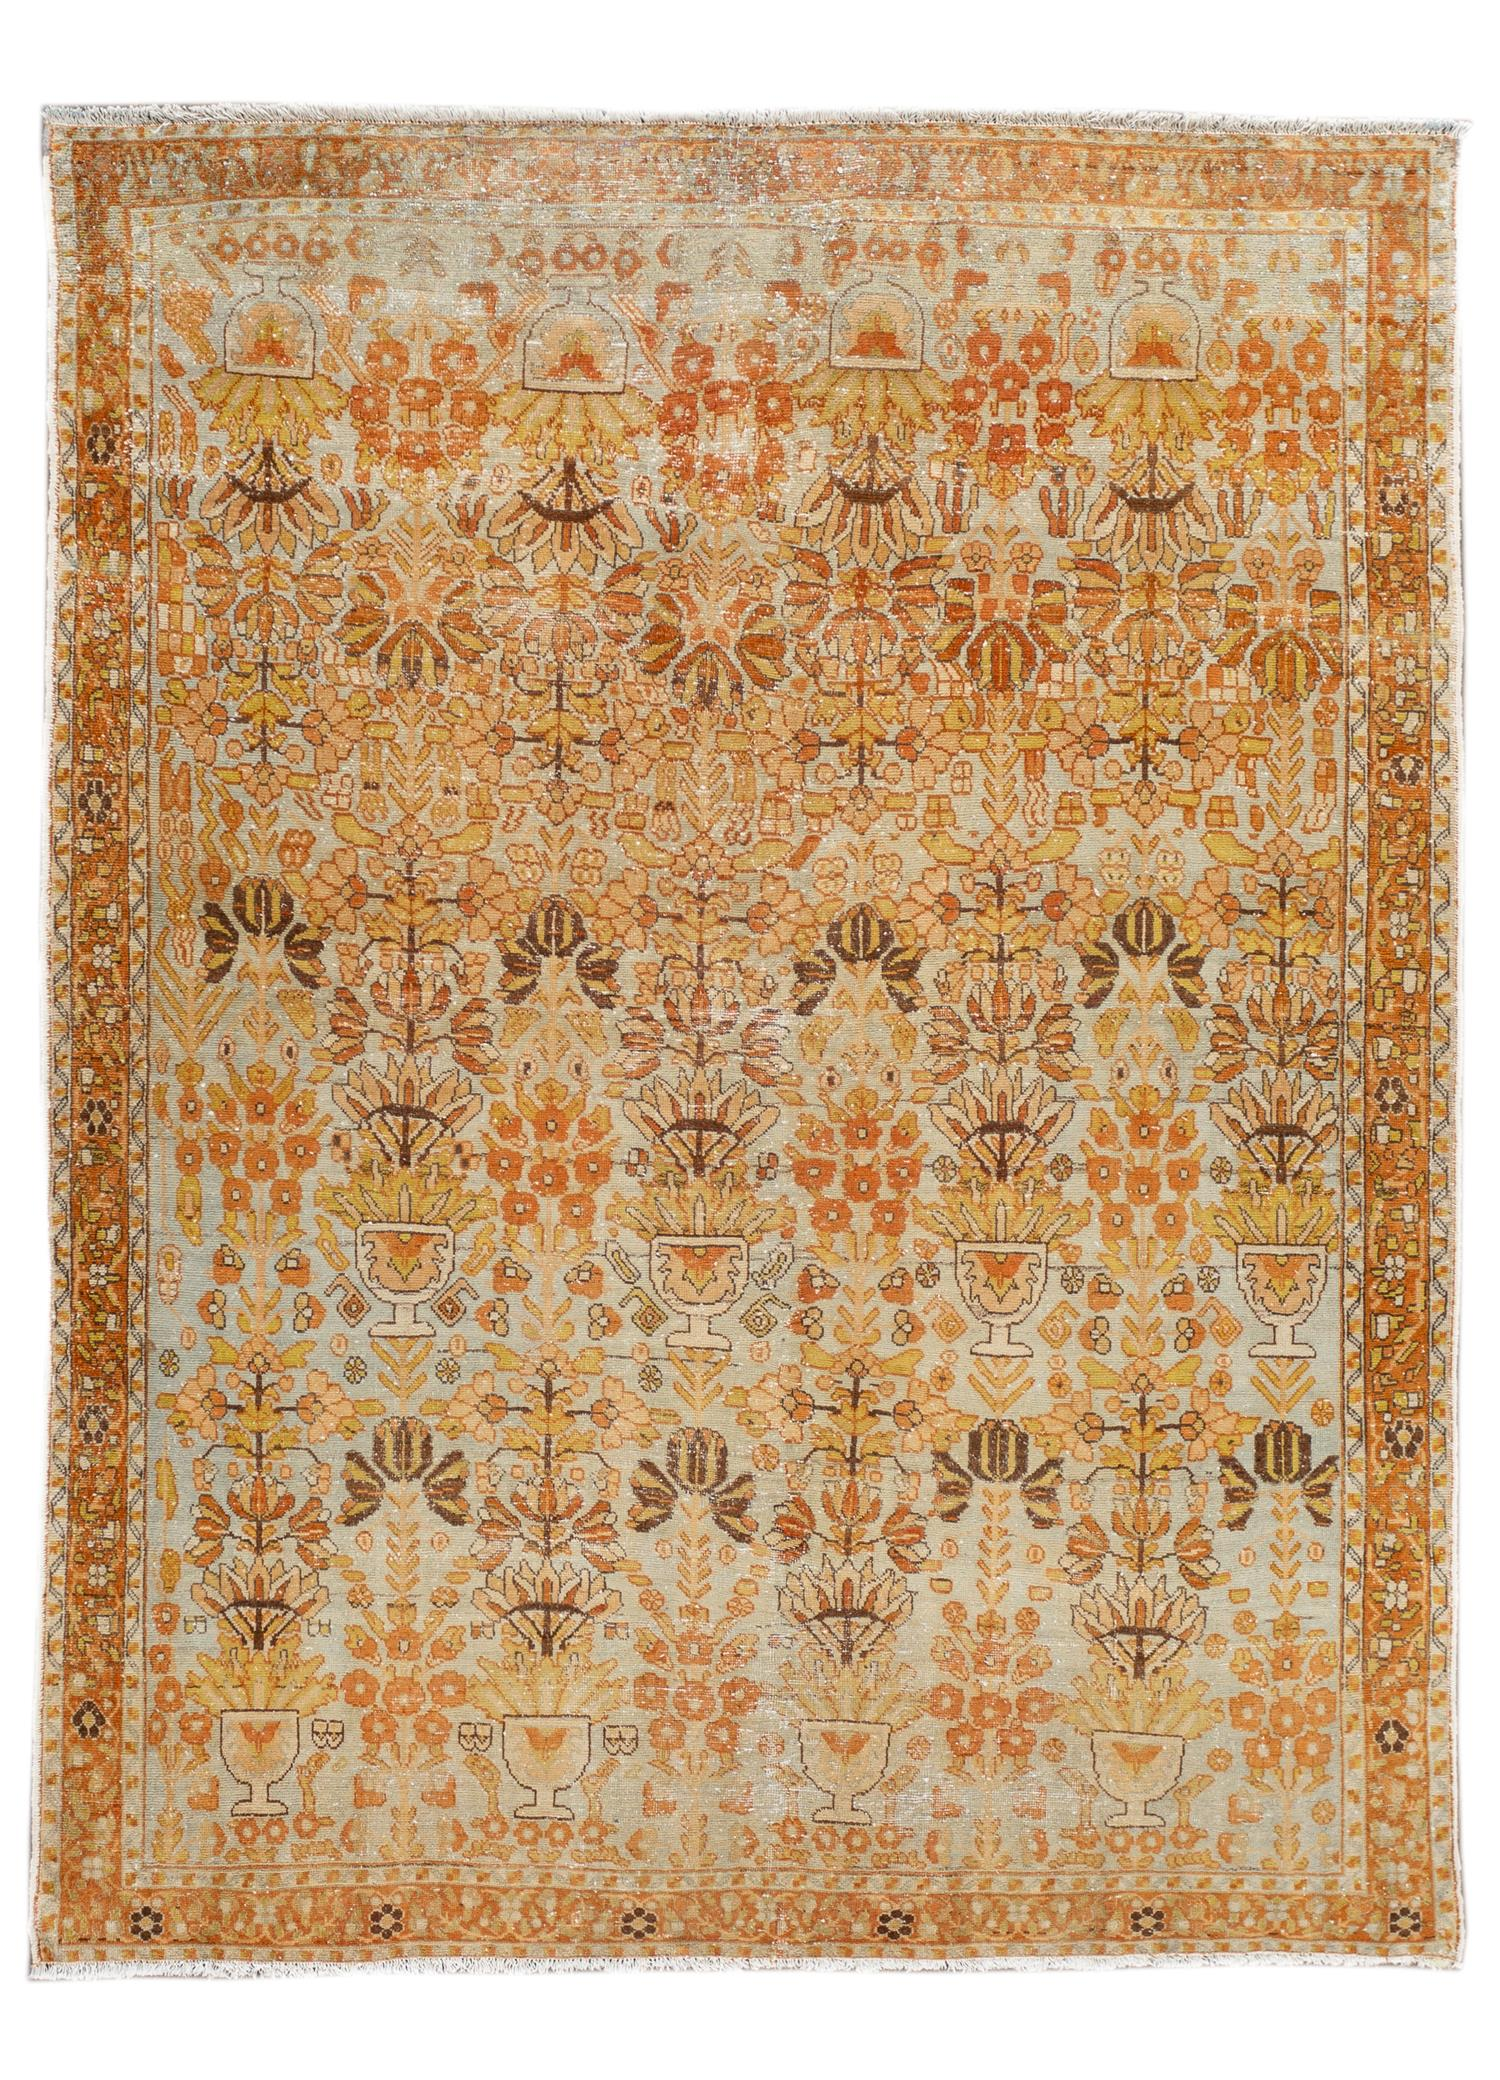 Antique Malayer Rug, #10235258, 5' x 6'